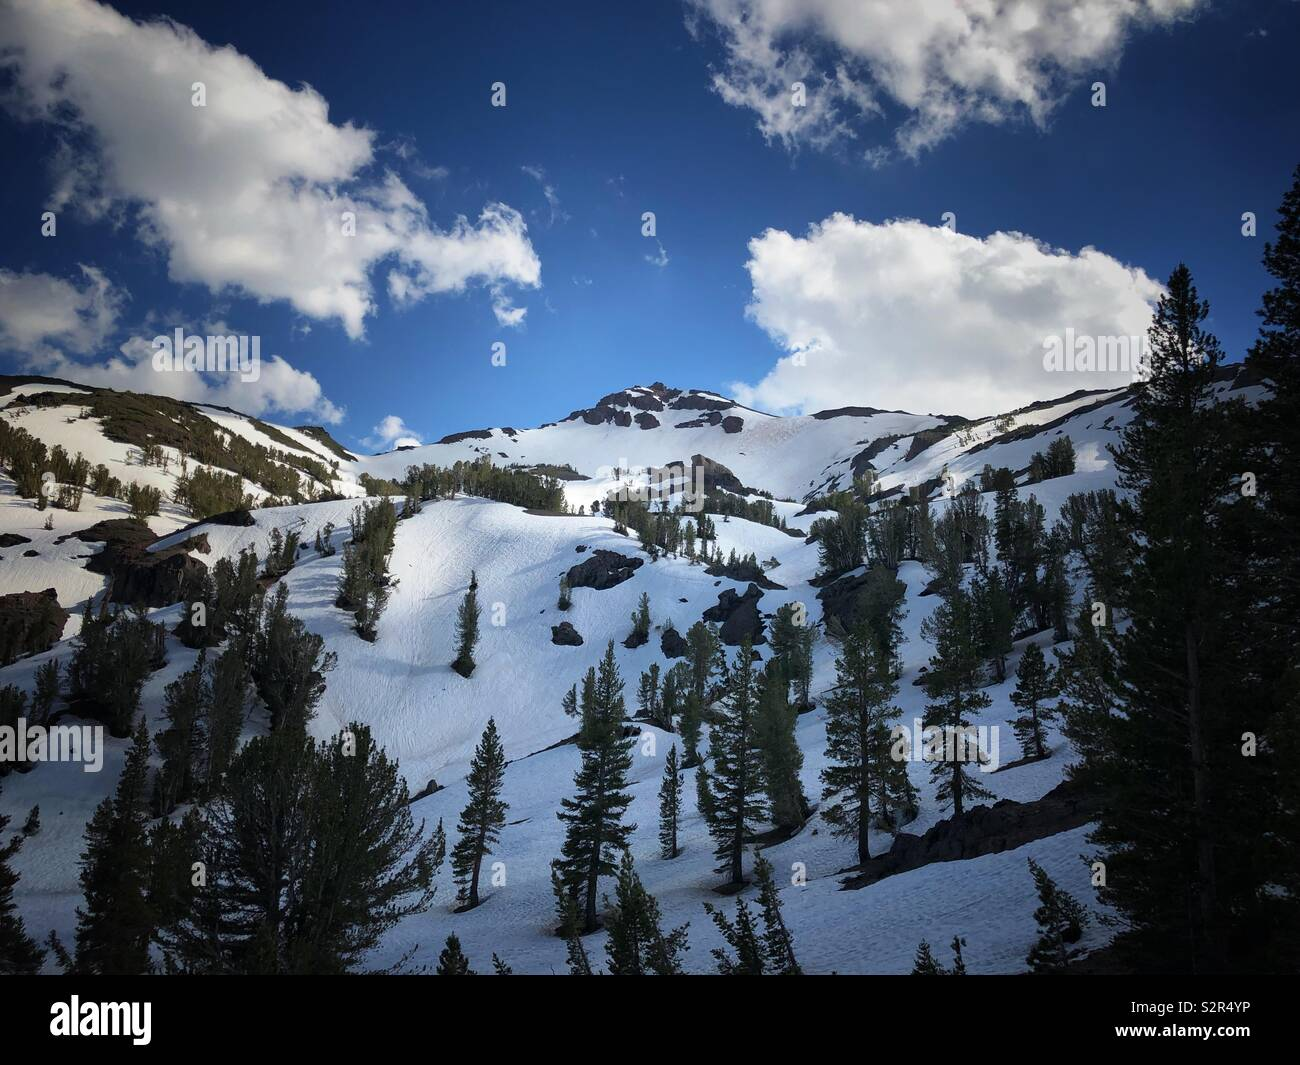 Sonora Pass high in the Sierras at 9,6624 ft. Taken in June 2019. Stock Photo